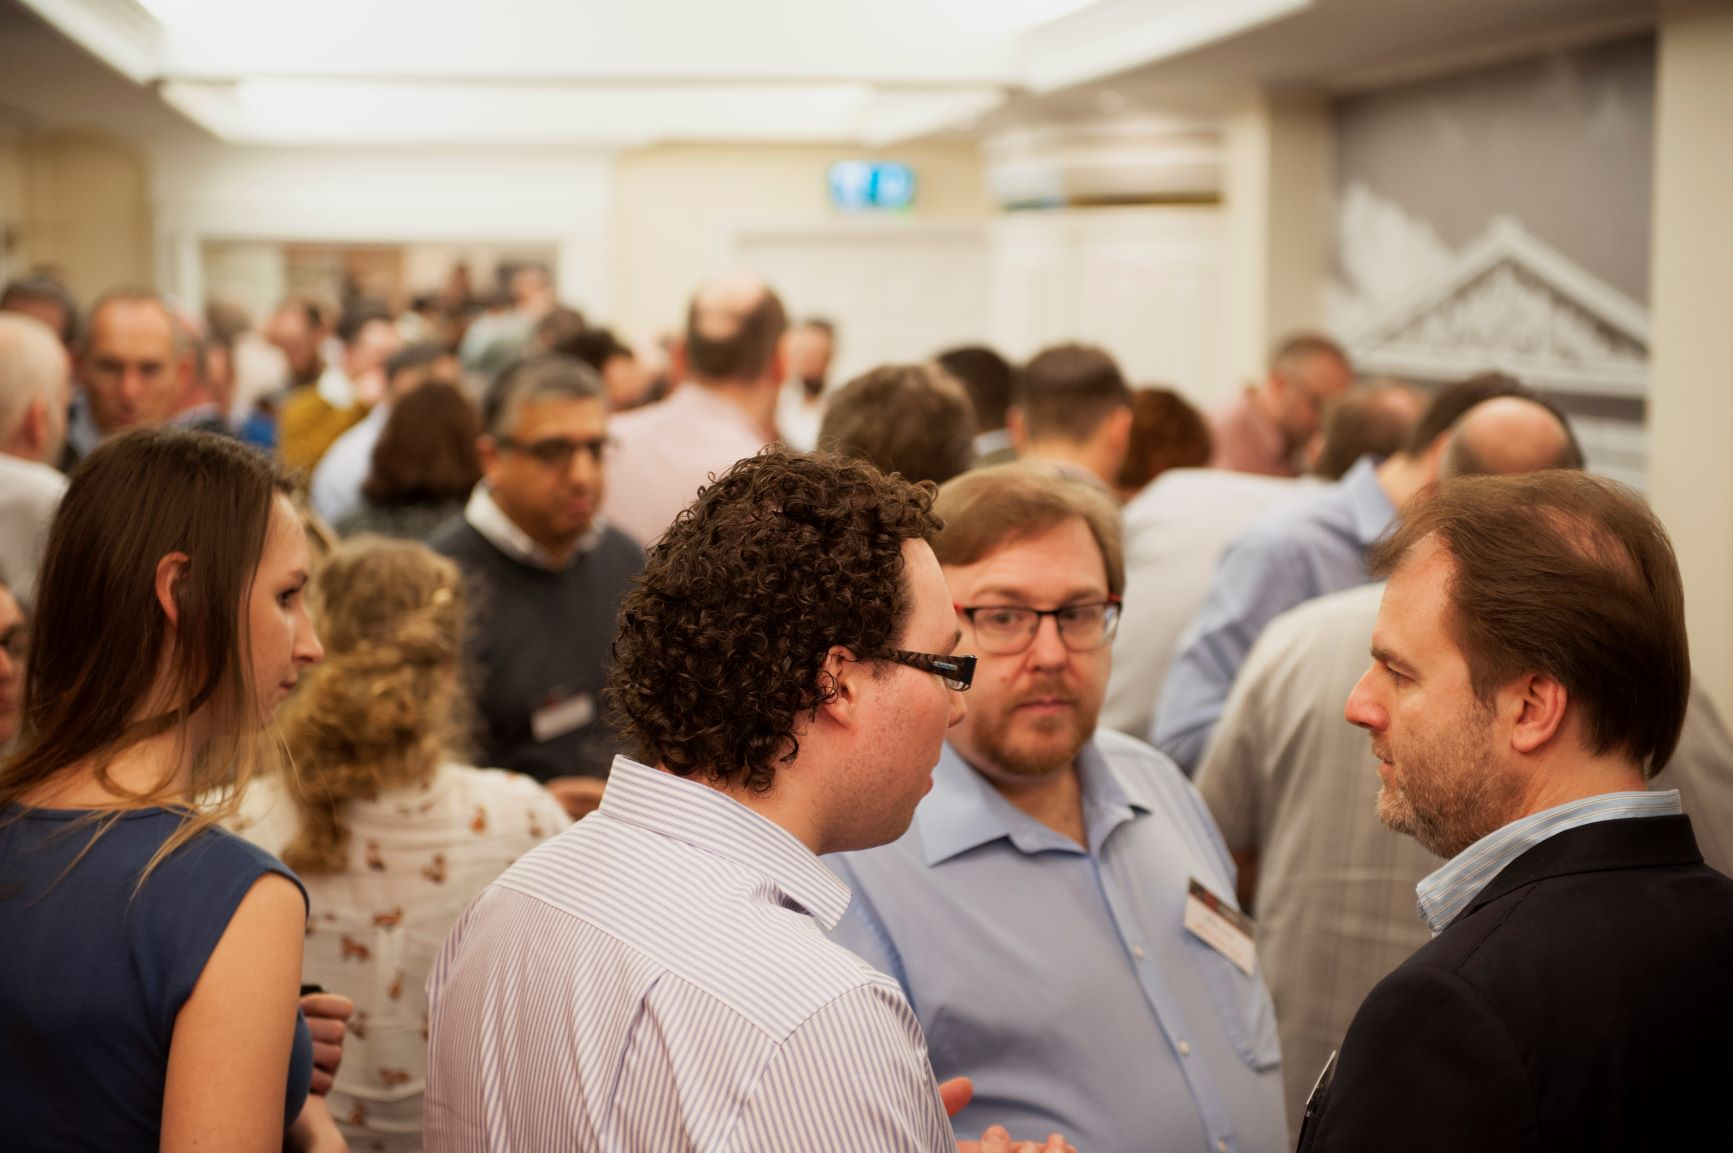 Networking_busy low res.jpg